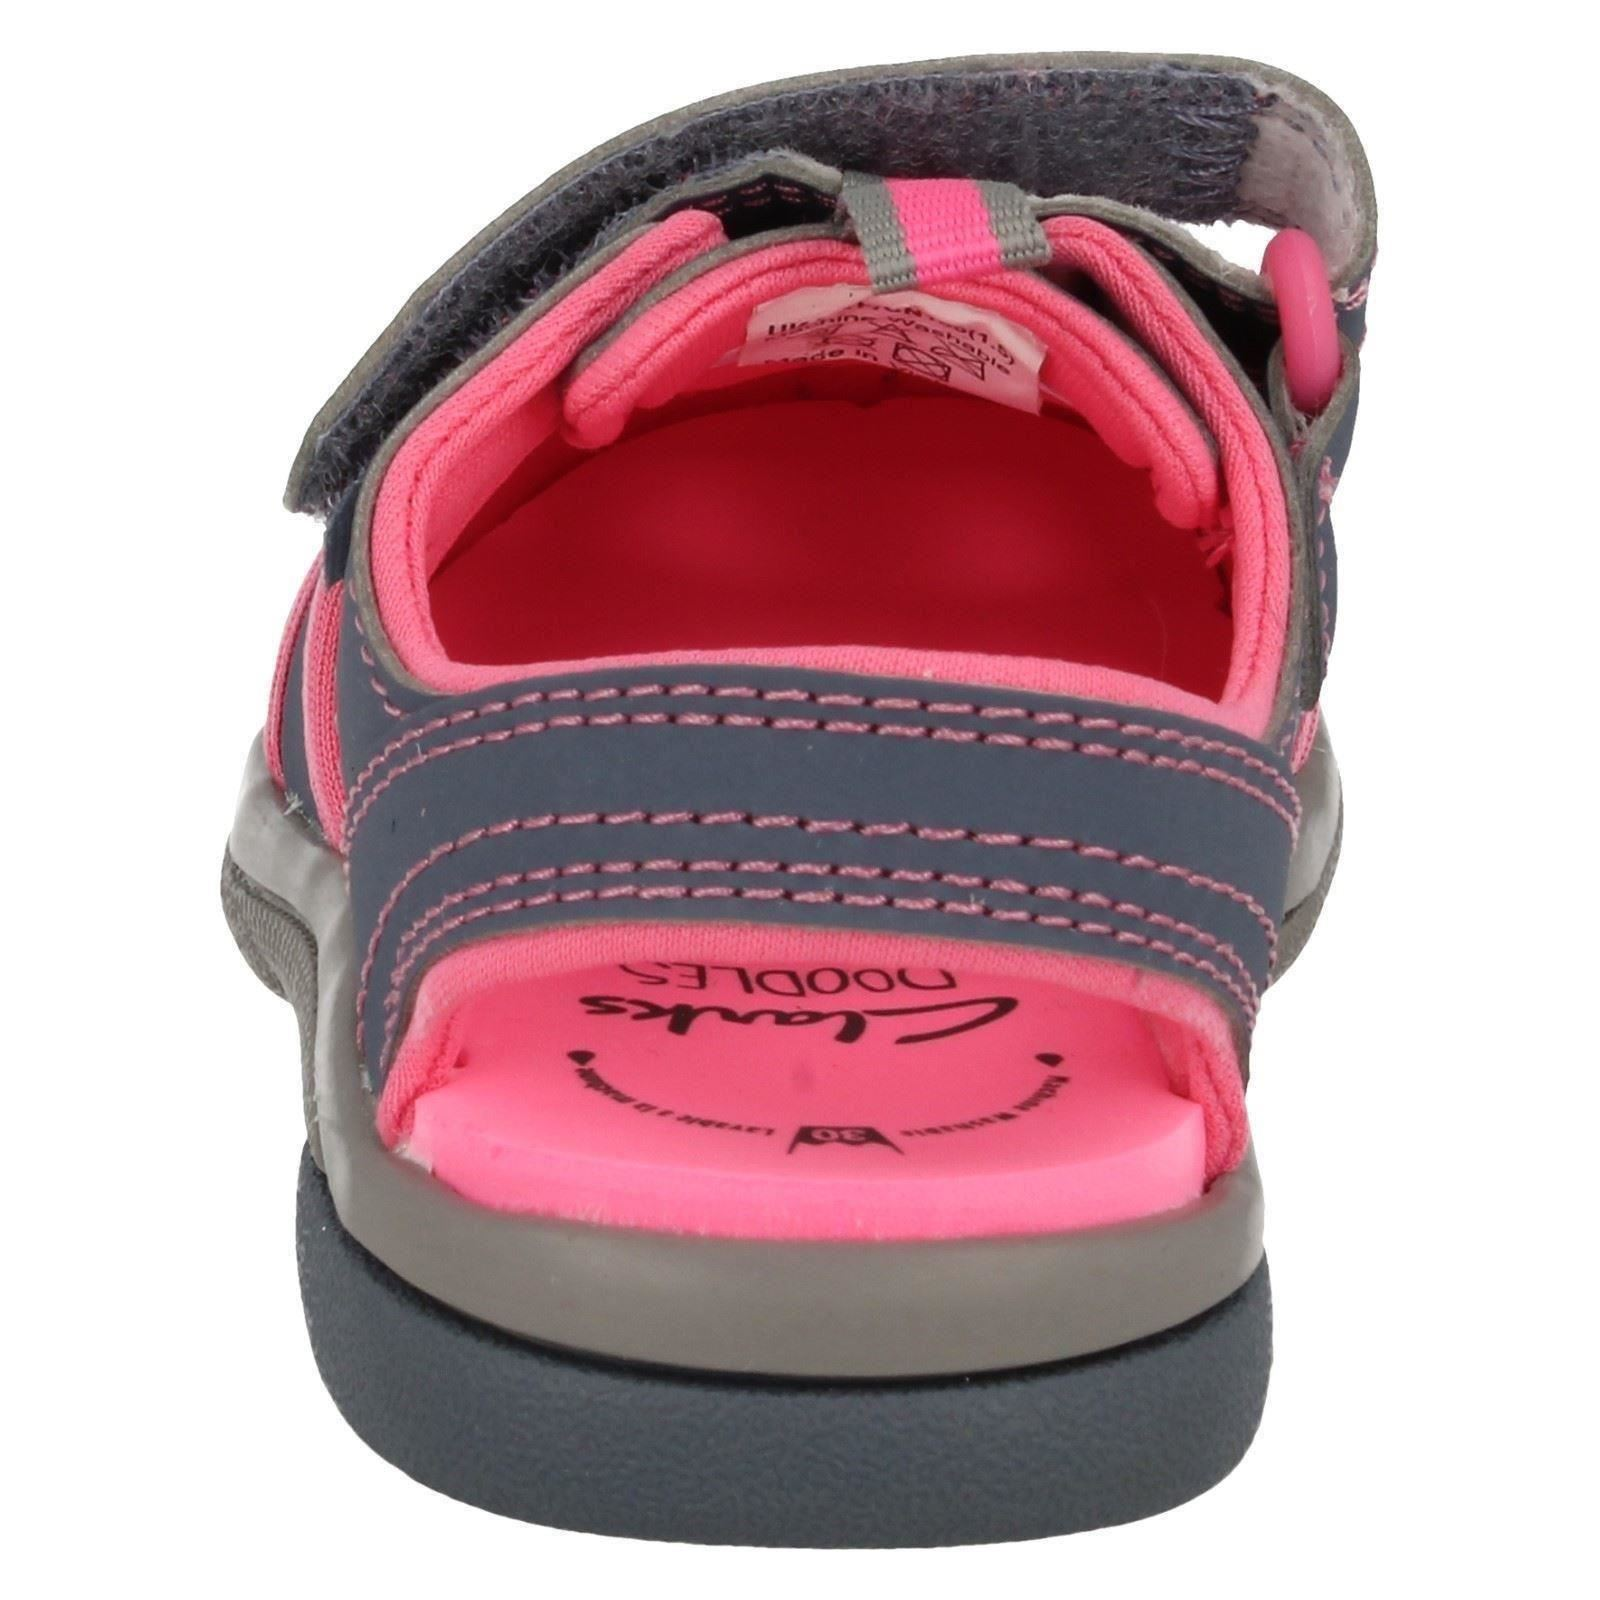 Infant Baby Toddler Clarks Closed Toe Hook & Loop Sandals / Shoes - Beach Tide